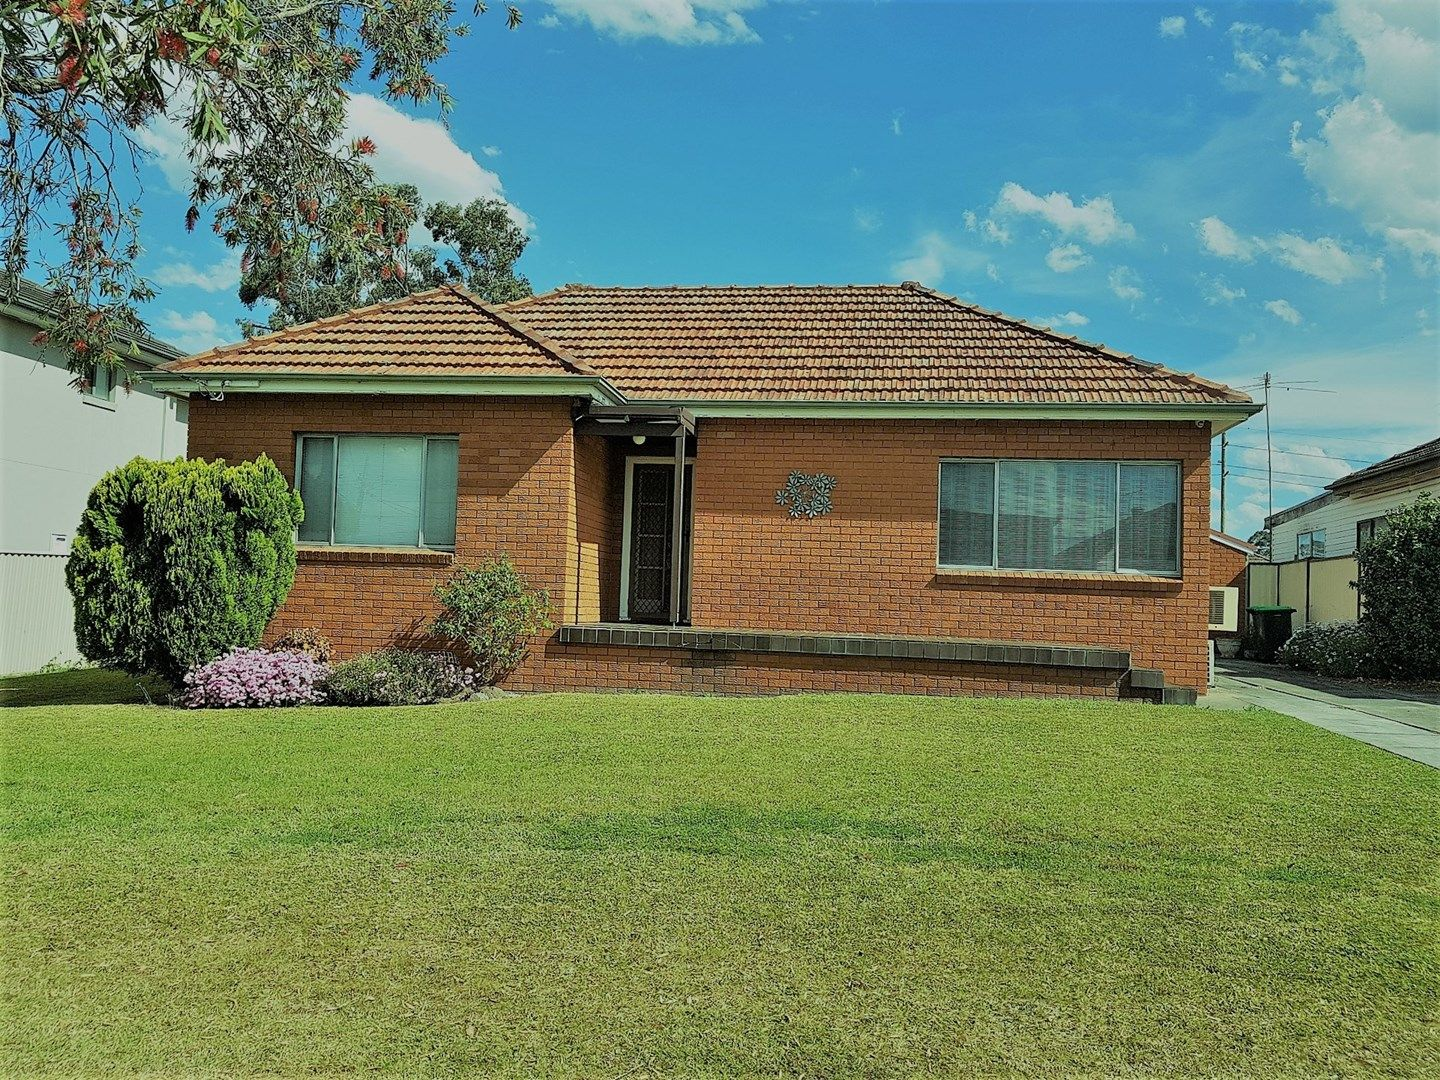 11 Neutral Avenue, Birrong NSW 2143, Image 0